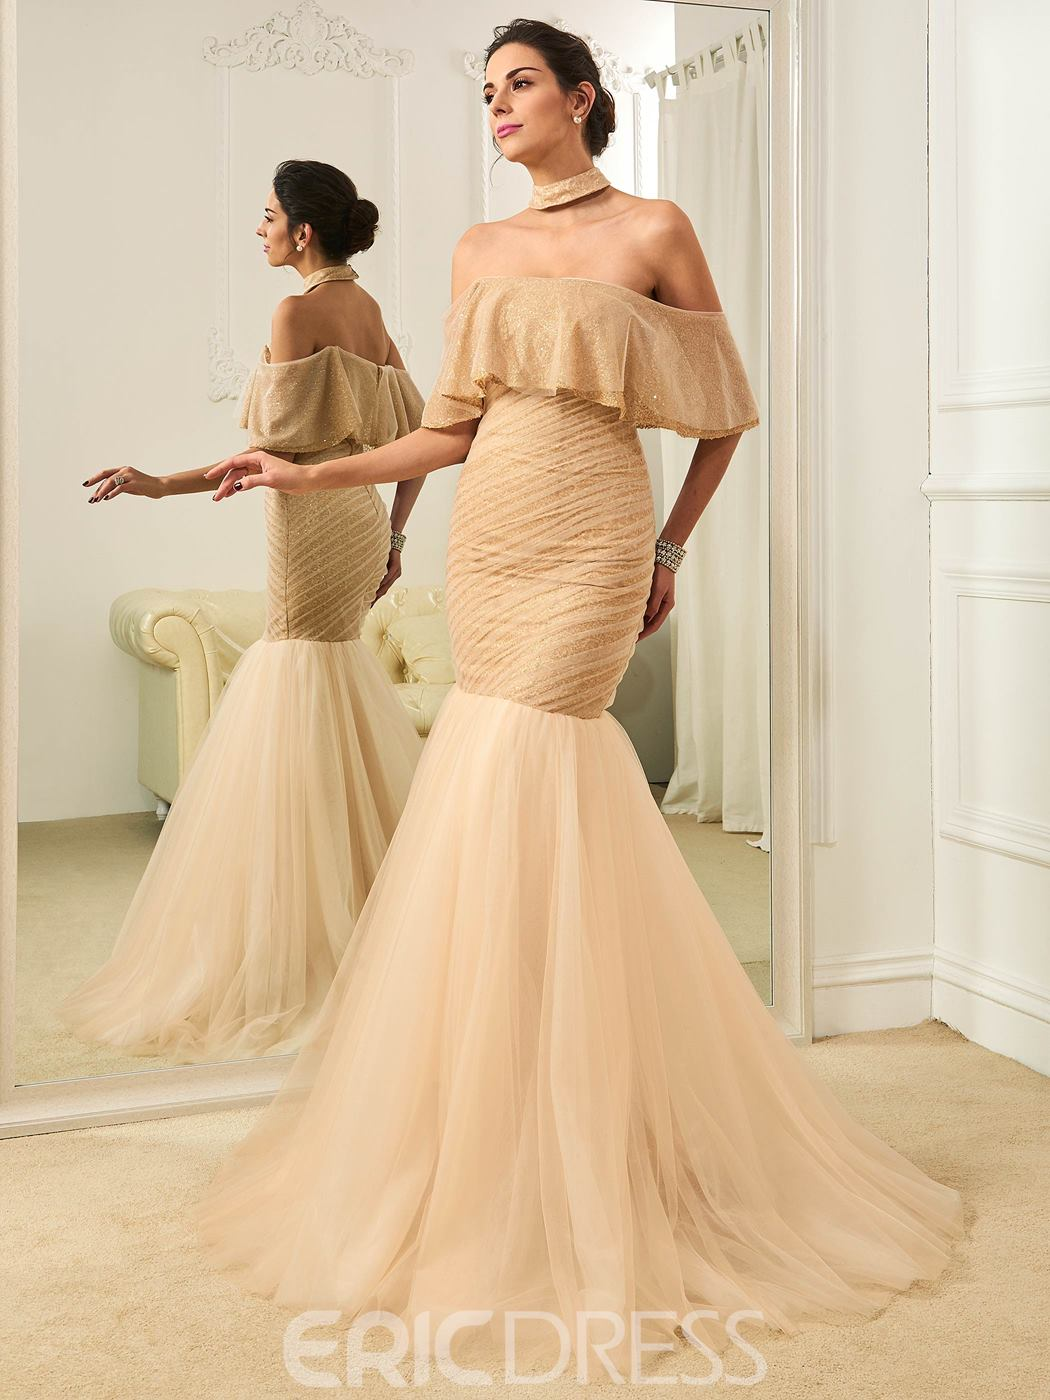 Ericdress Fancy Off The Shoulder Mermaid Color Wedding Dress